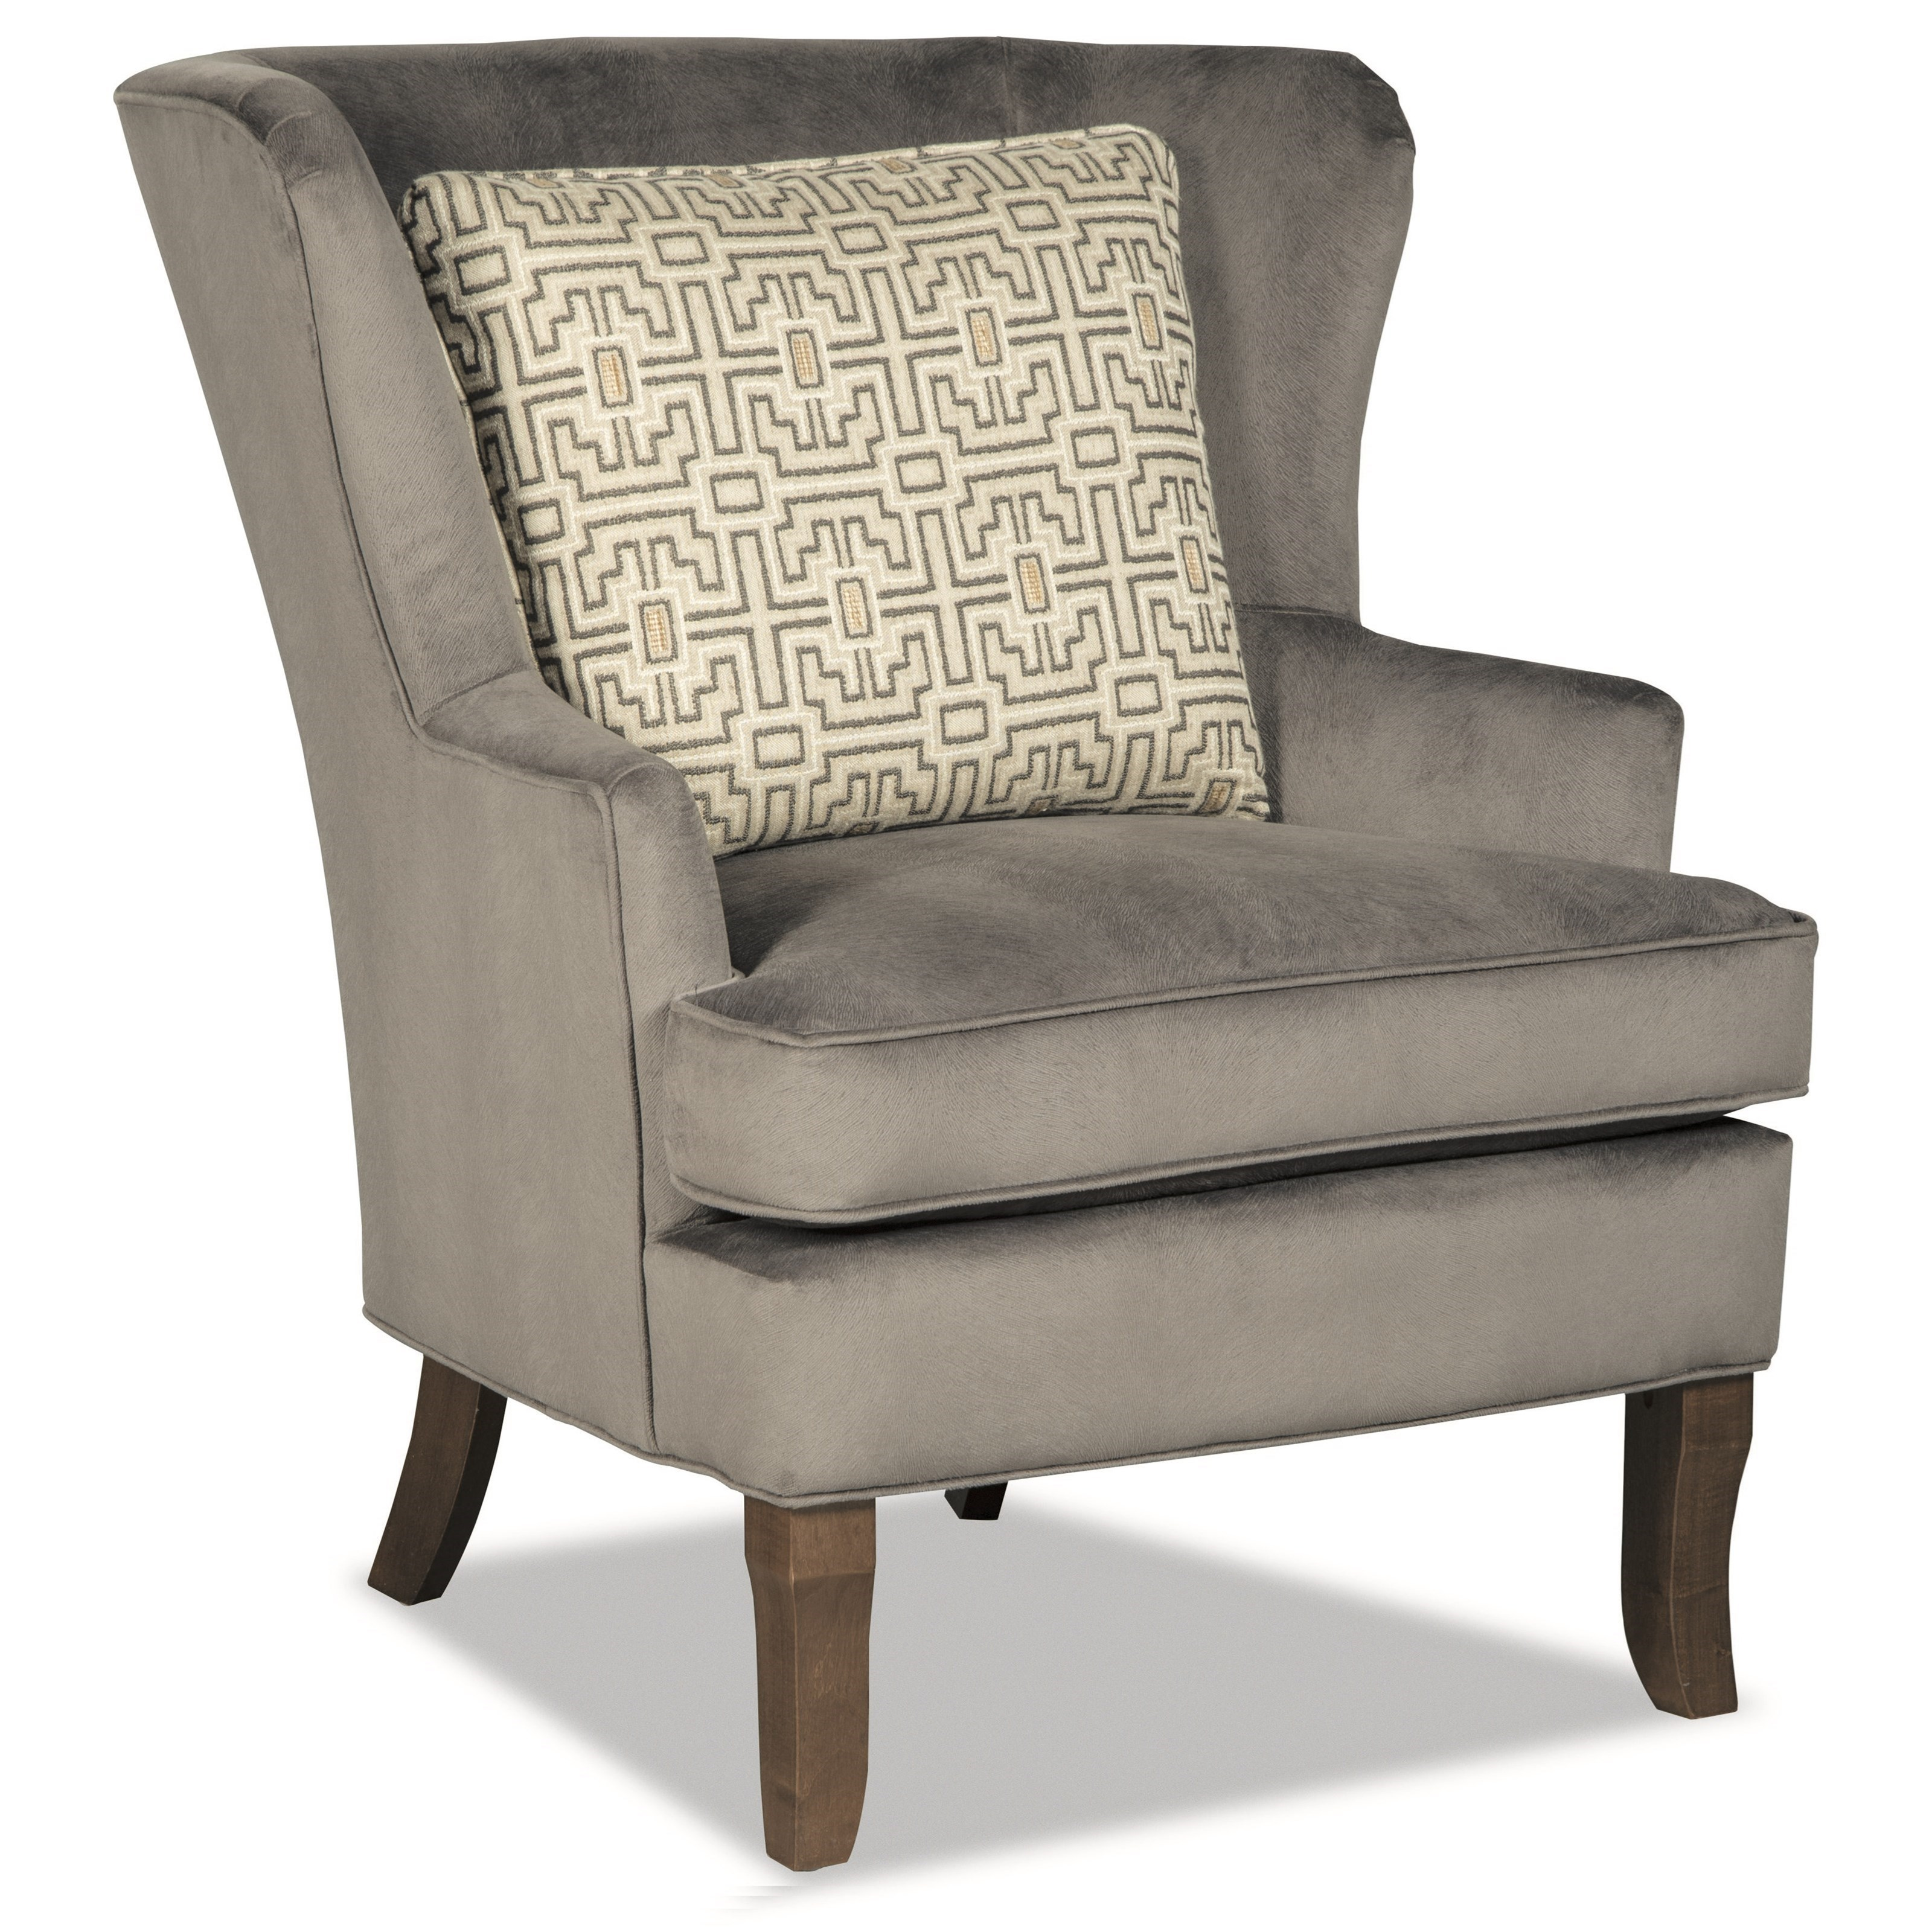 Craftmaster Accent Chairs Traditional Upholstered Wing Chair - Item Number 085010-HUNTCLUB-45  sc 1 st  Miskelly Furniture & Craftmaster Accent Chairs Traditional Upholstered Wing Chair with ...